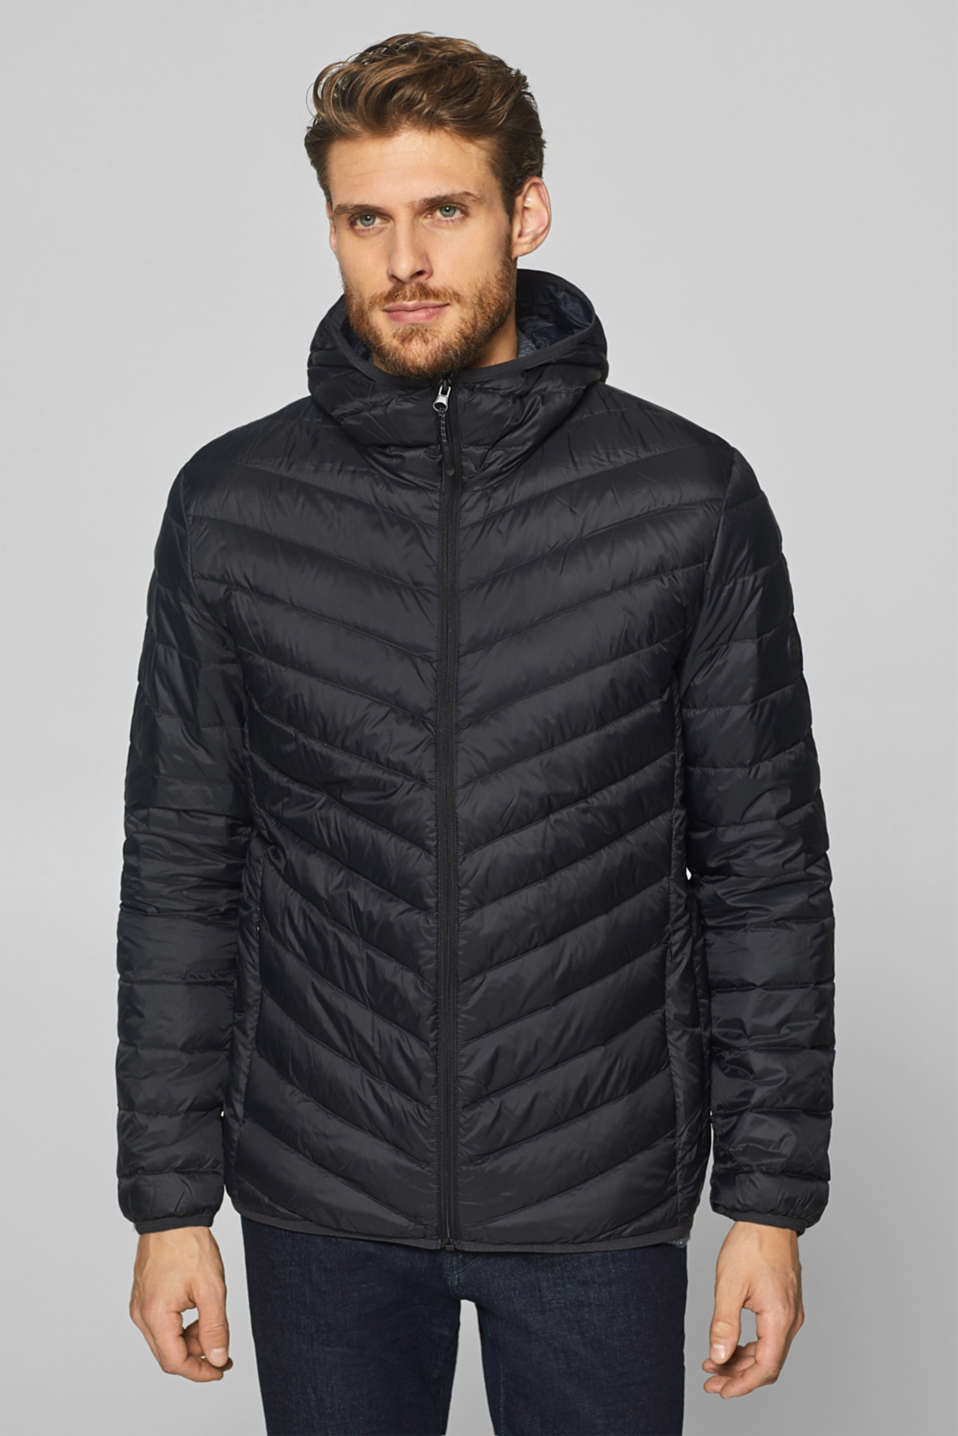 Esprit - Quilted jacket with a hood and down/feather filling